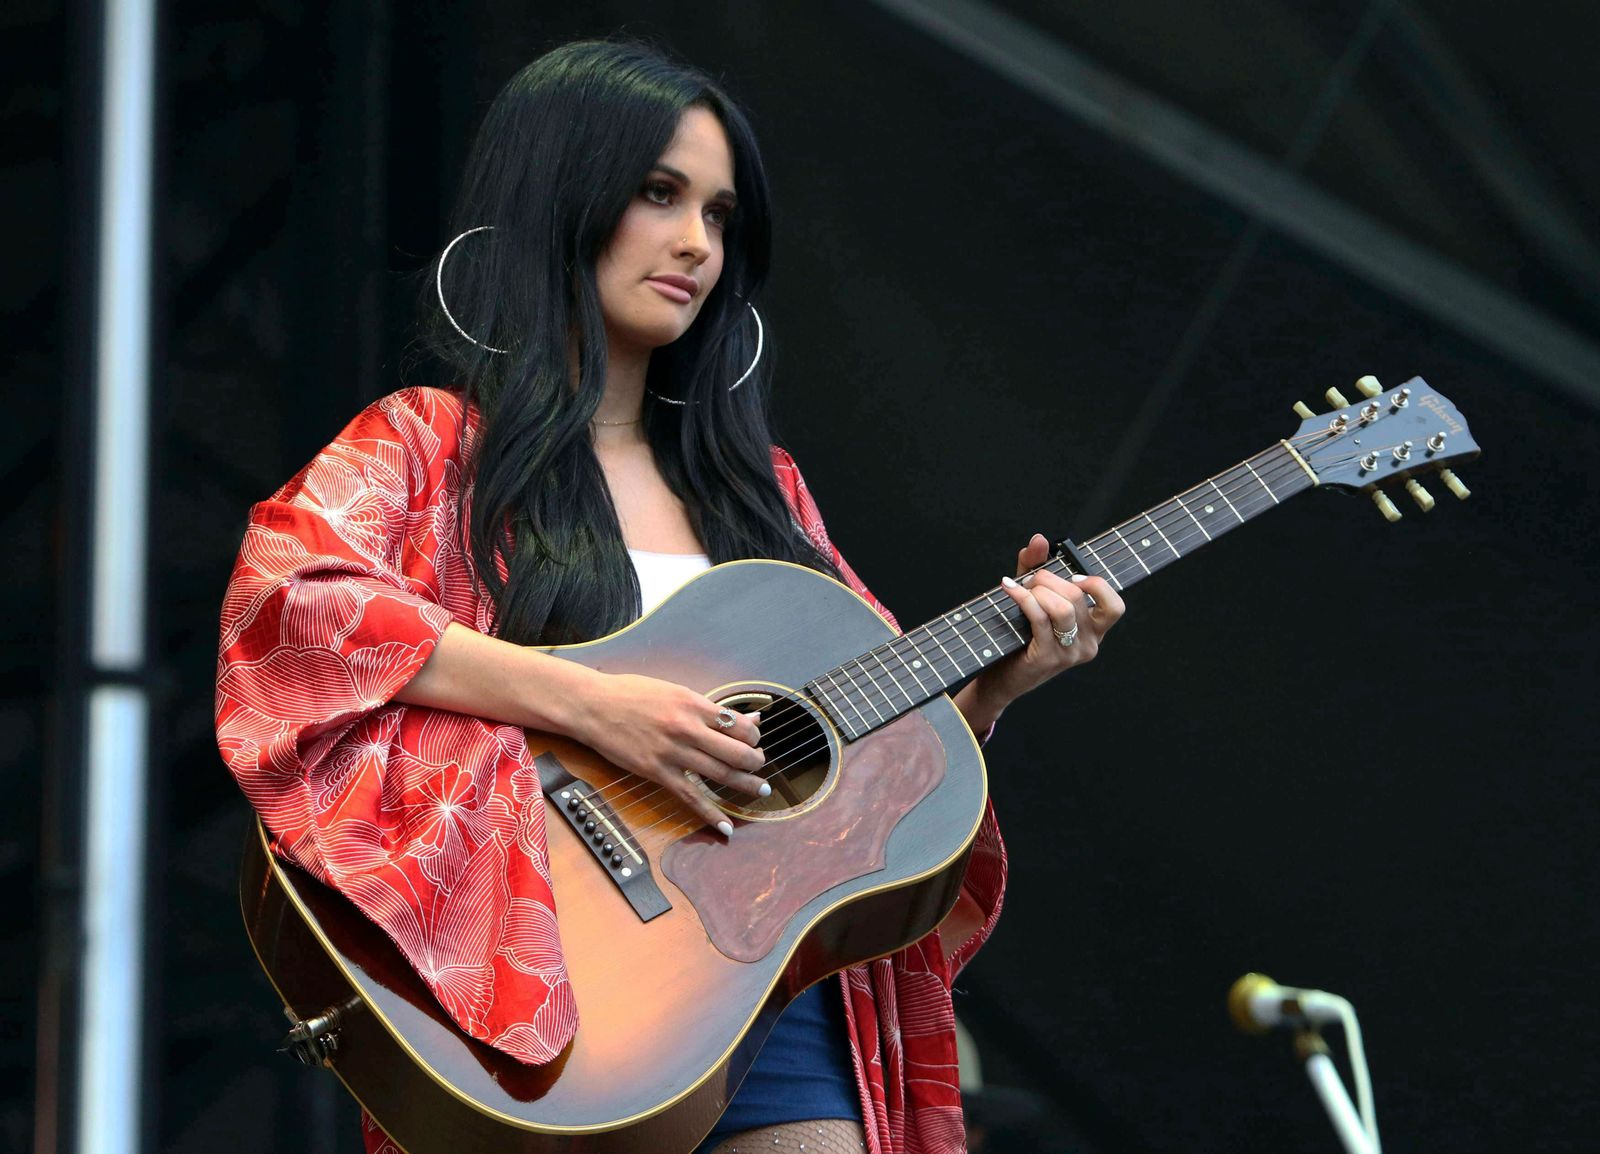 FILE - In this Sept. 15, 2018 file photo, Kacey Musgraves performs during Music MidTown 2018 at Piedmont Park, in Atlanta. (Photo by Katie Darby/Invision/AP, File)